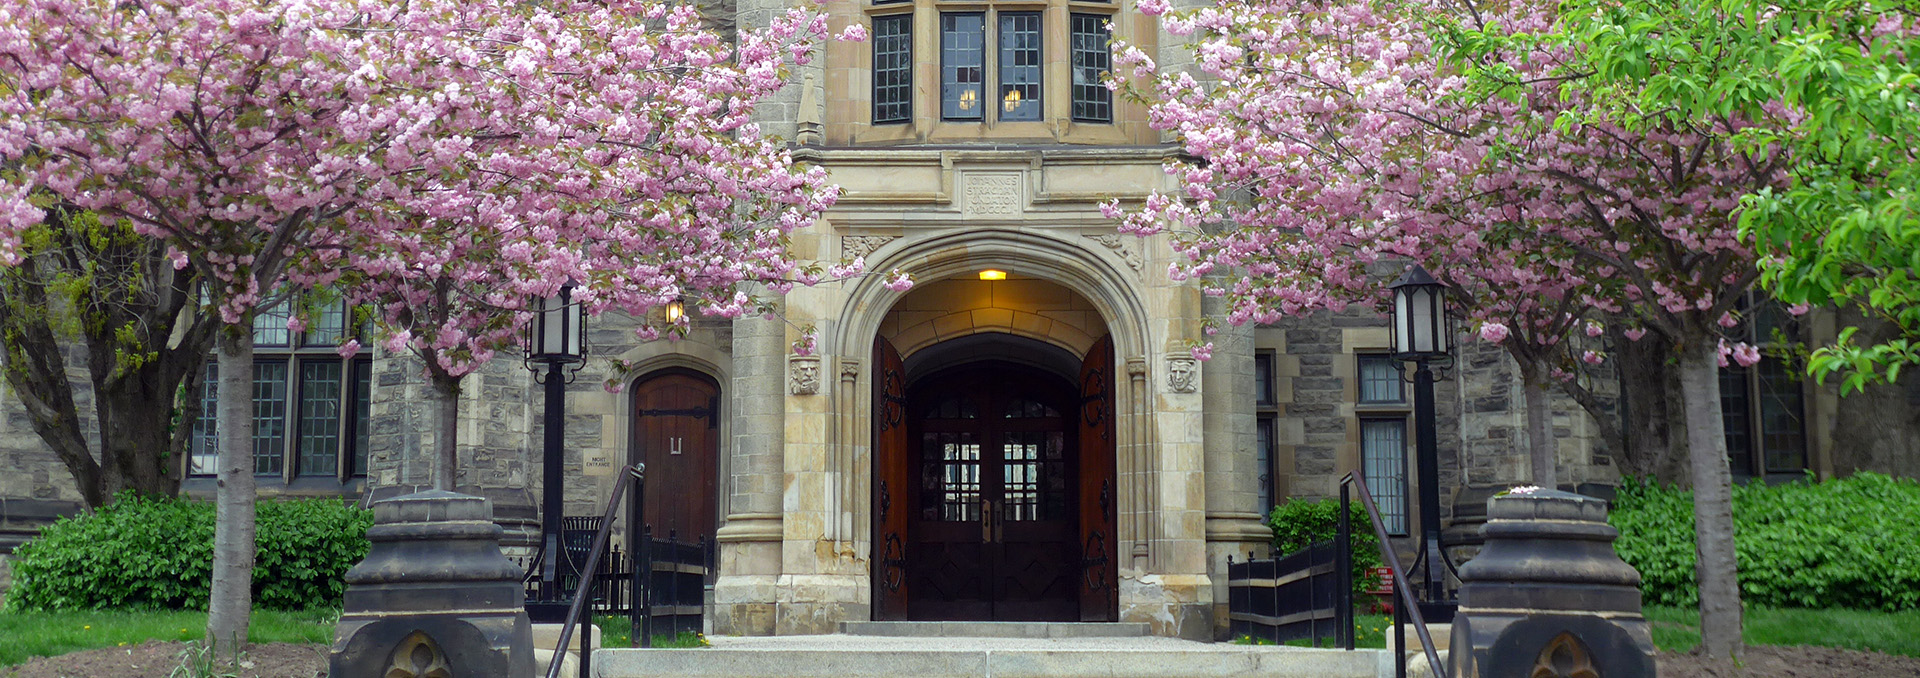 Front entrance to Trinity College with pink crabapple blossoms